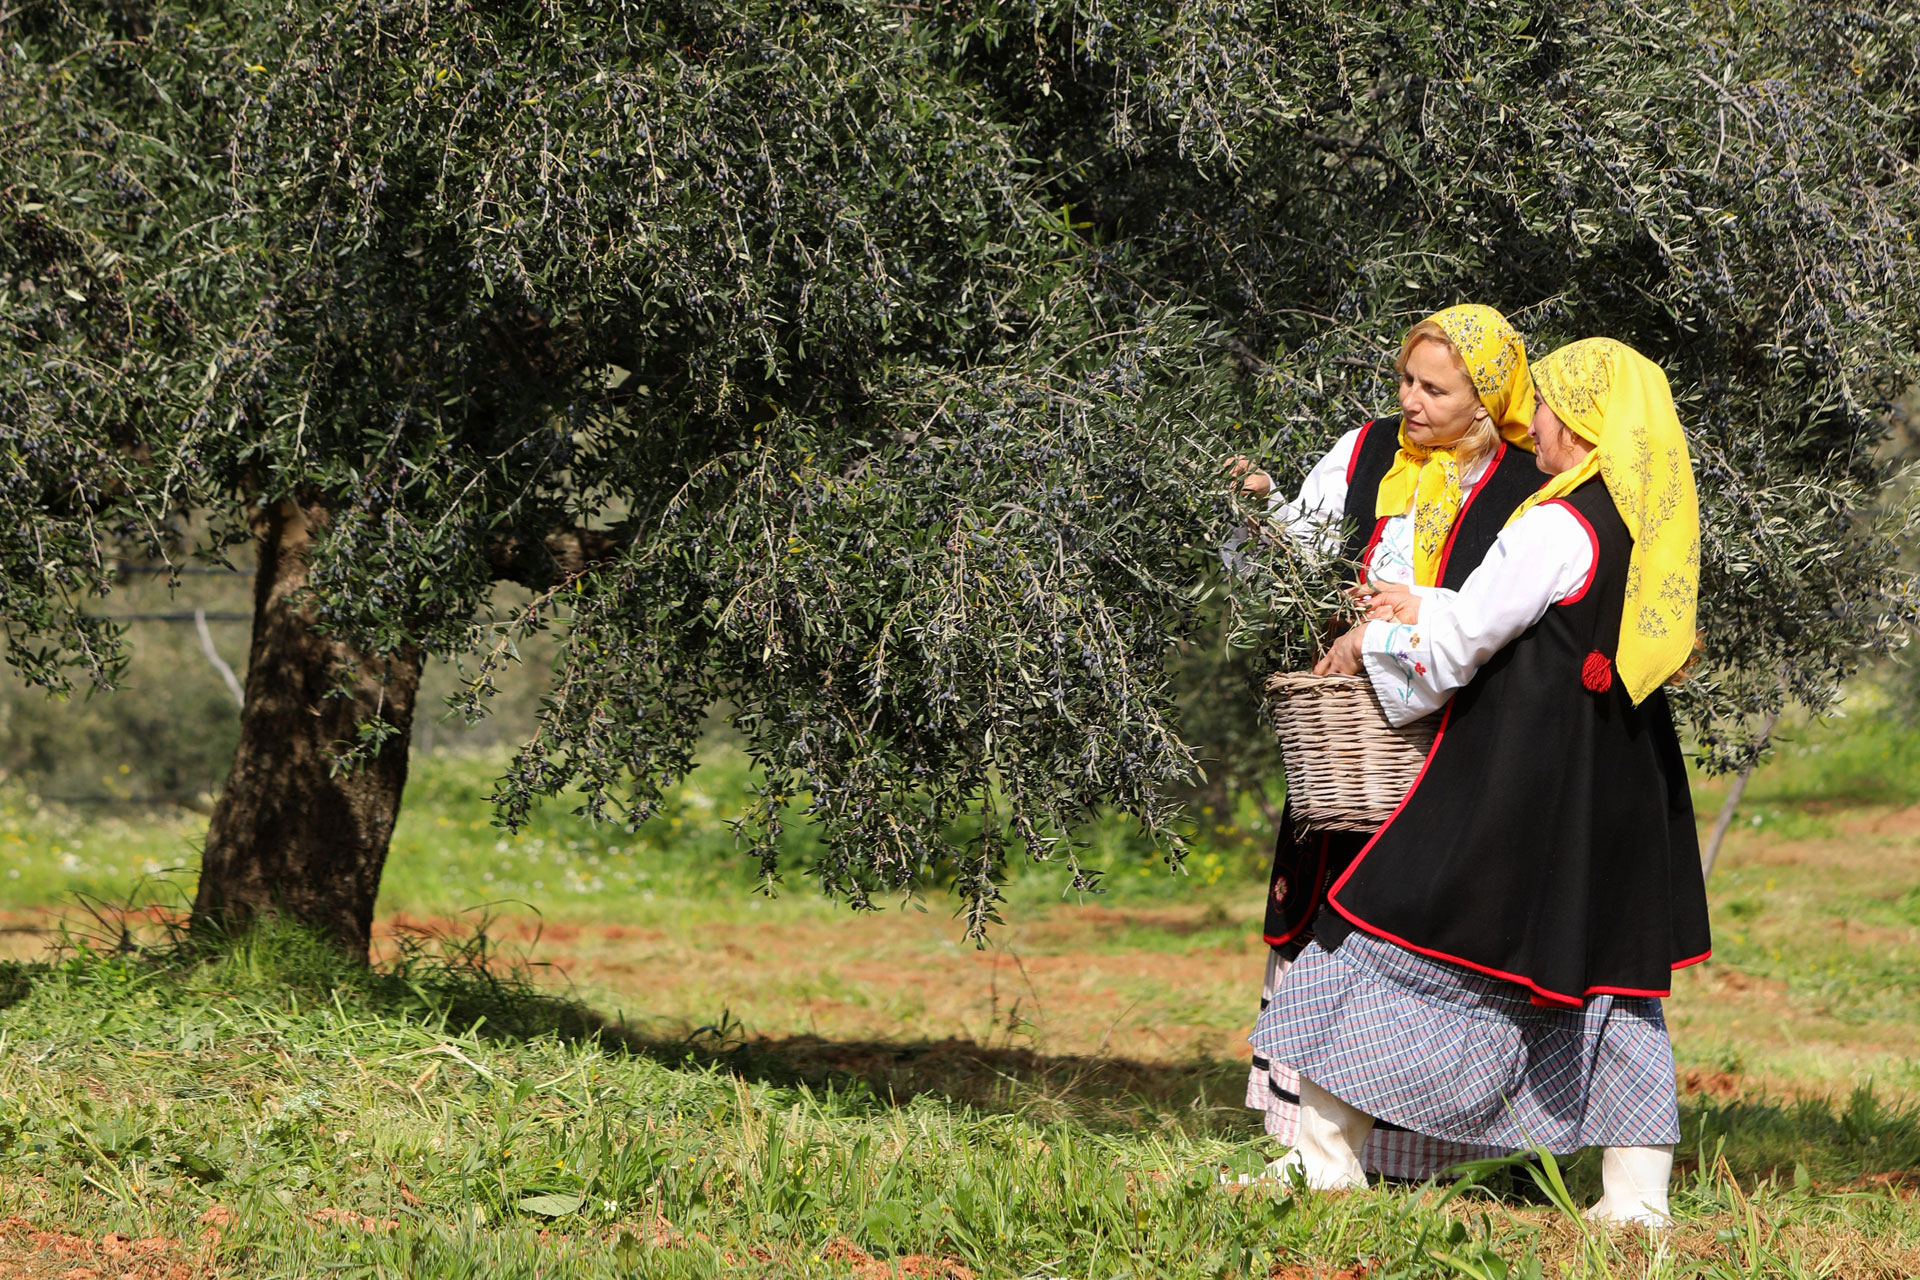 Olives are traditionally picked by hand